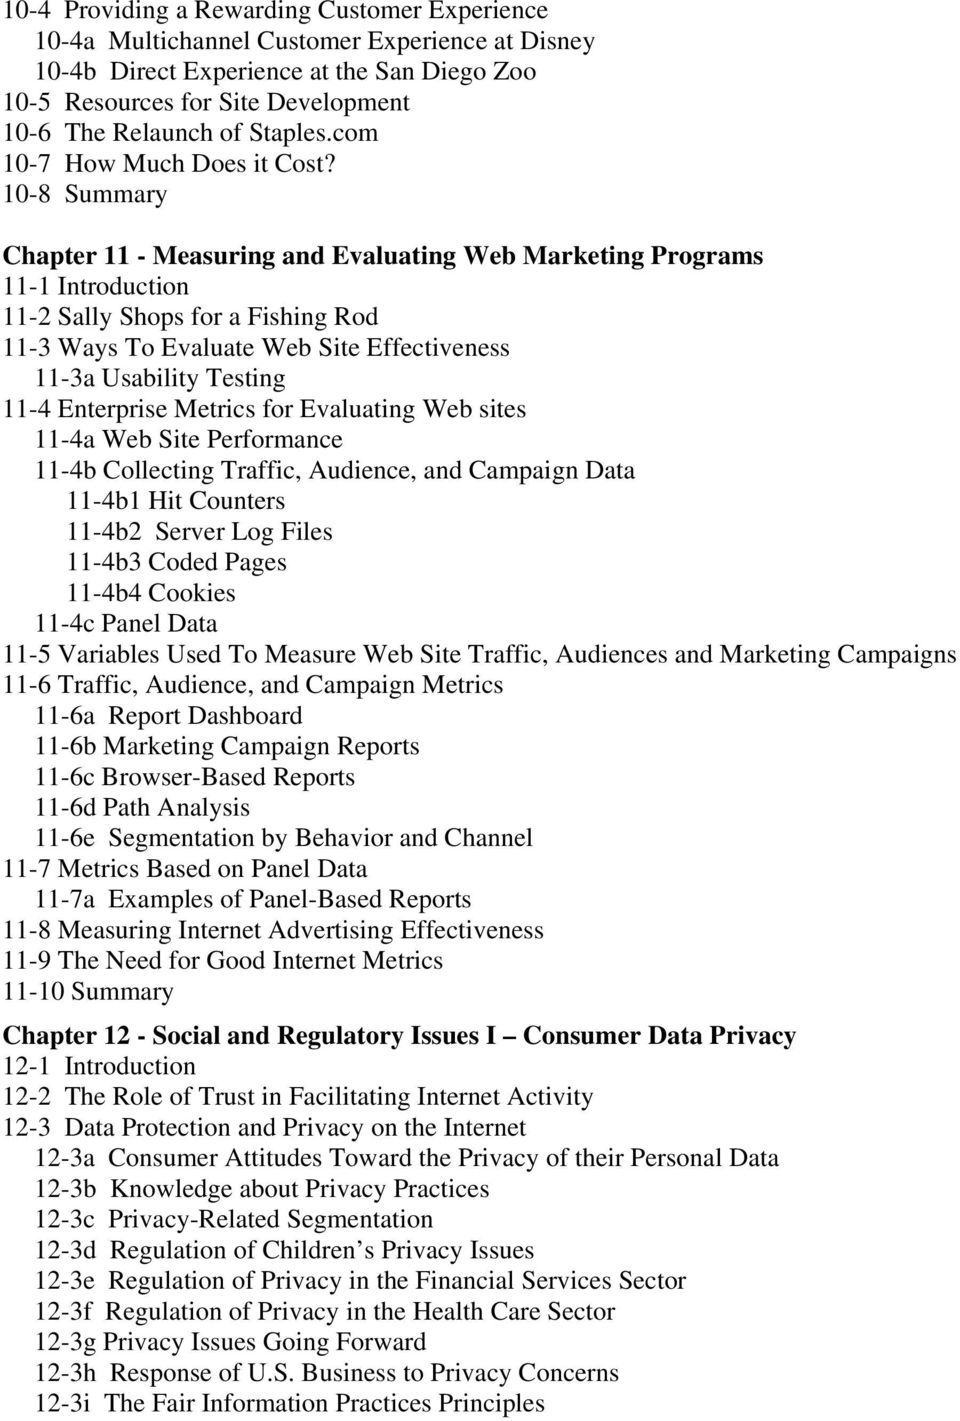 10-8 Summary Chapter 11 - Measuring and Evaluating Web Marketing Programs 11-1 Introduction 11-2 Sally Shops for a Fishing Rod 11-3 Ways To Evaluate Web Site Effectiveness 11-3a Usability Testing